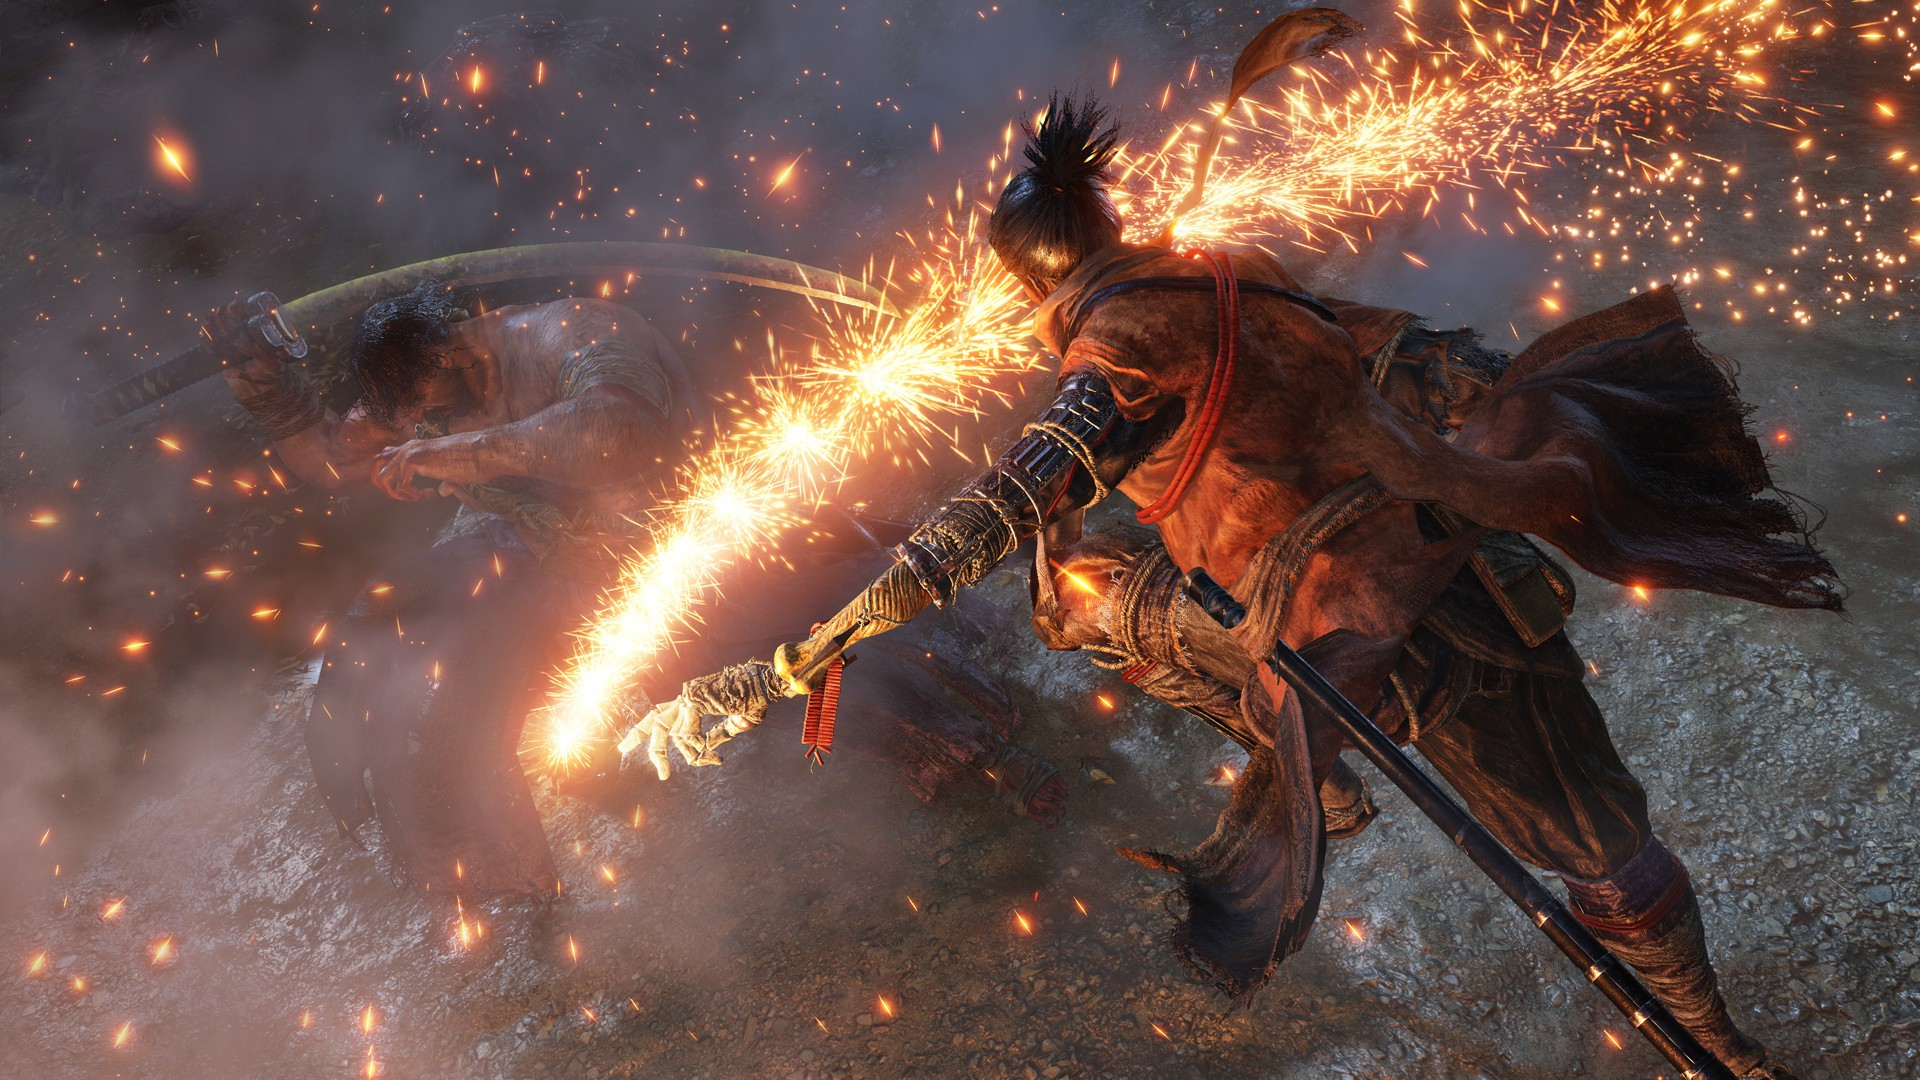 Sekiro PC System Requirements are available only on VGR